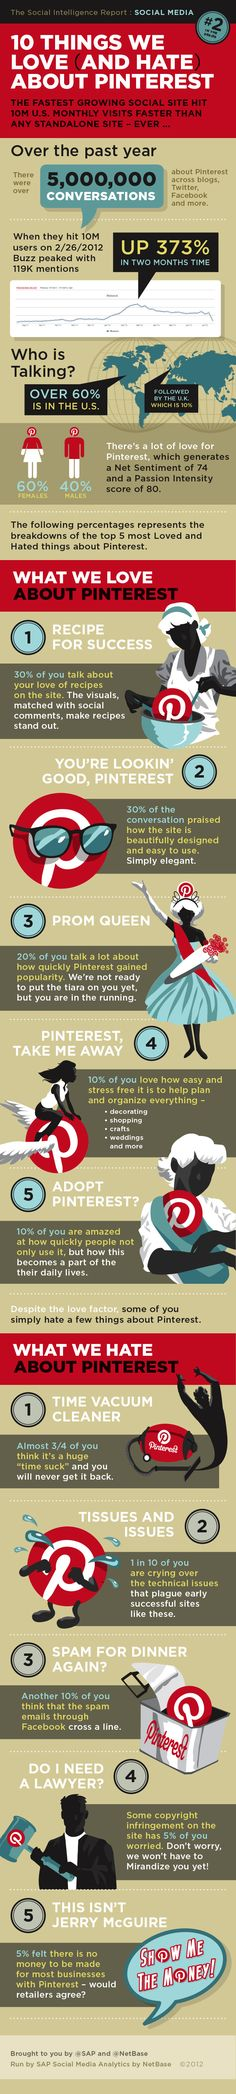 The Interest In Pinterest - What we love and hate about the popular site! Do you agree?